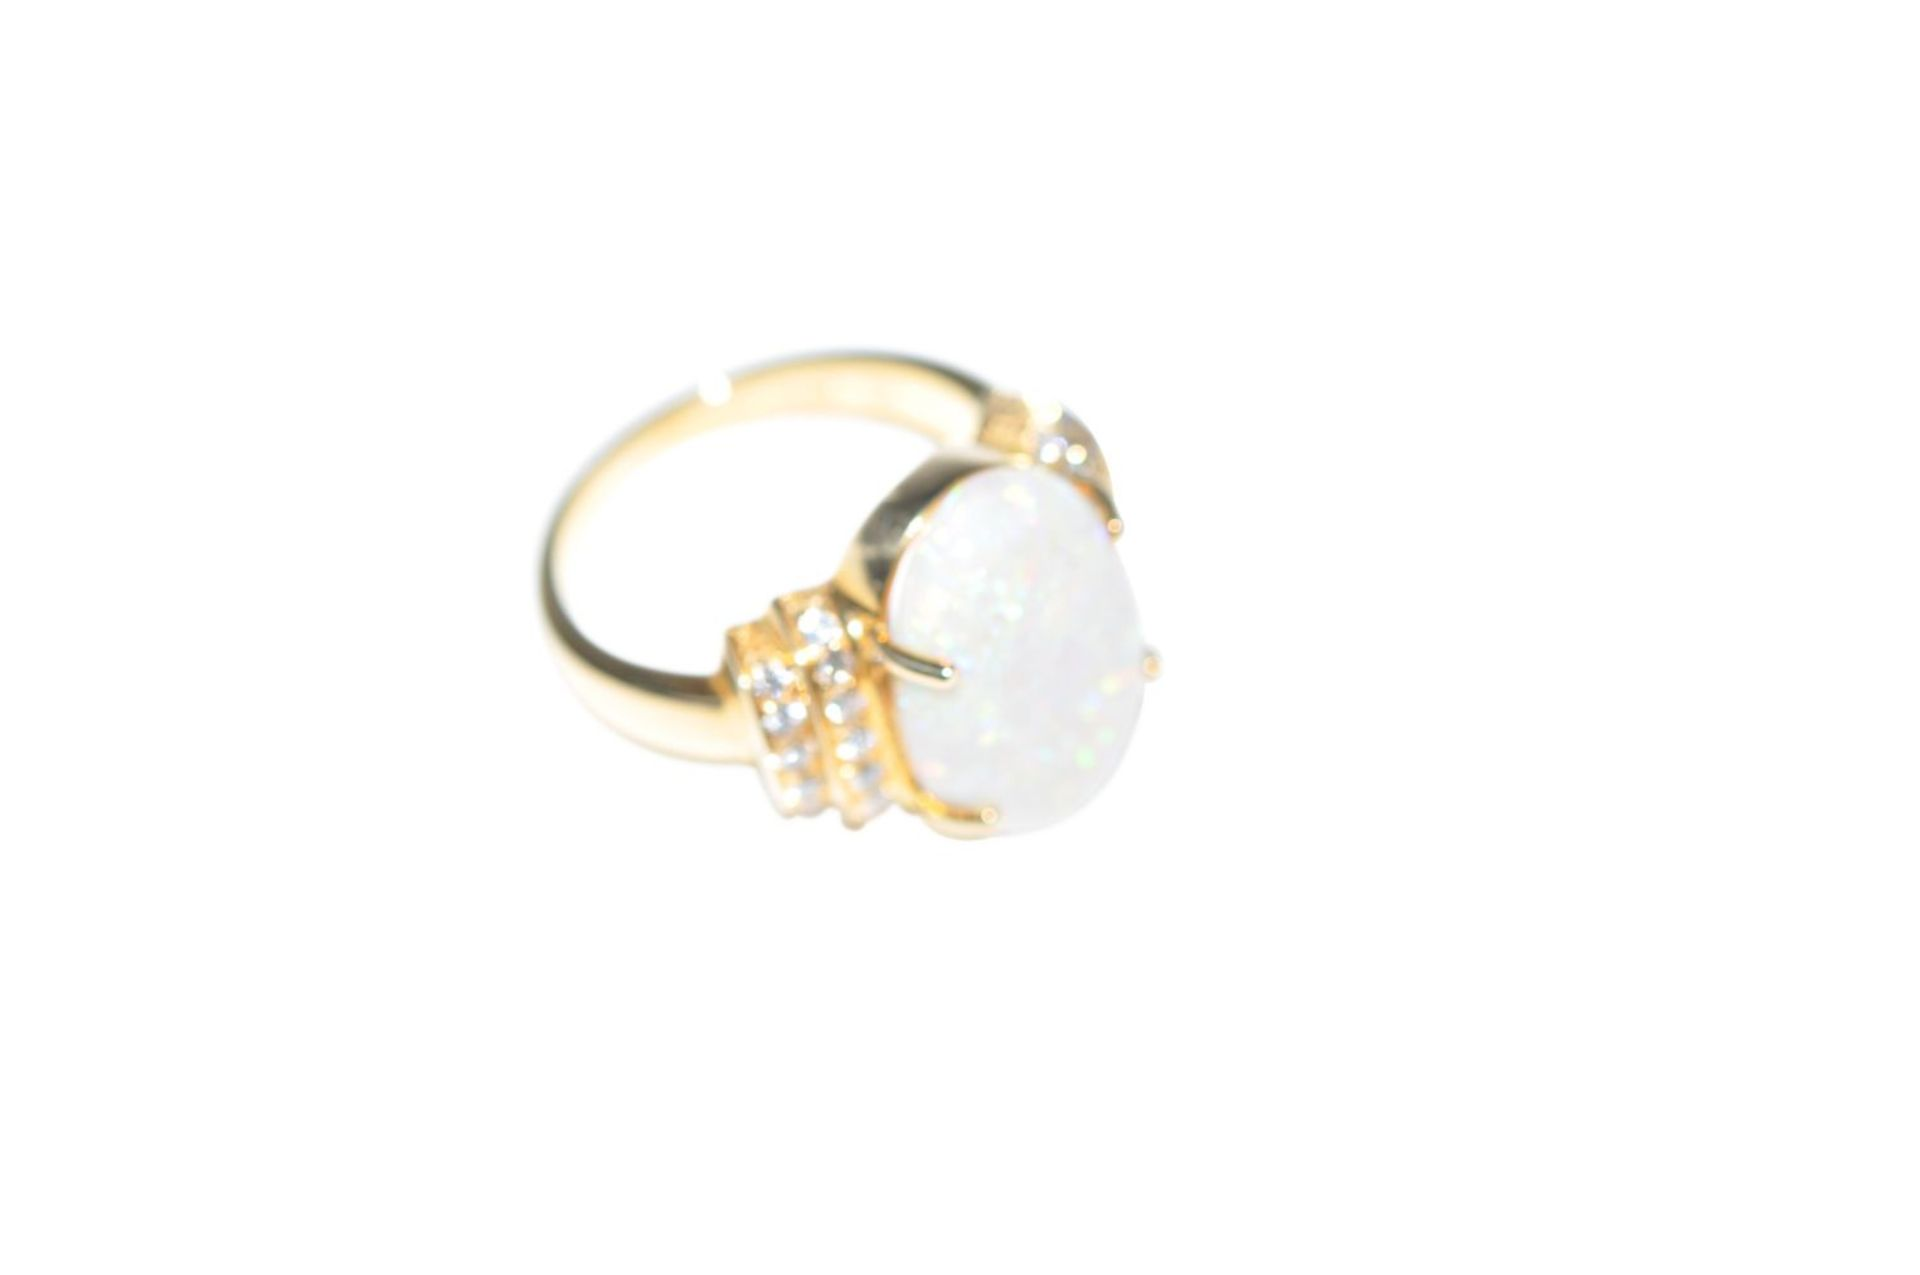 Los 90 - Brilliant ring with opal18Kt gold ring with diamonds total carat weight approx. 0.28ct and an